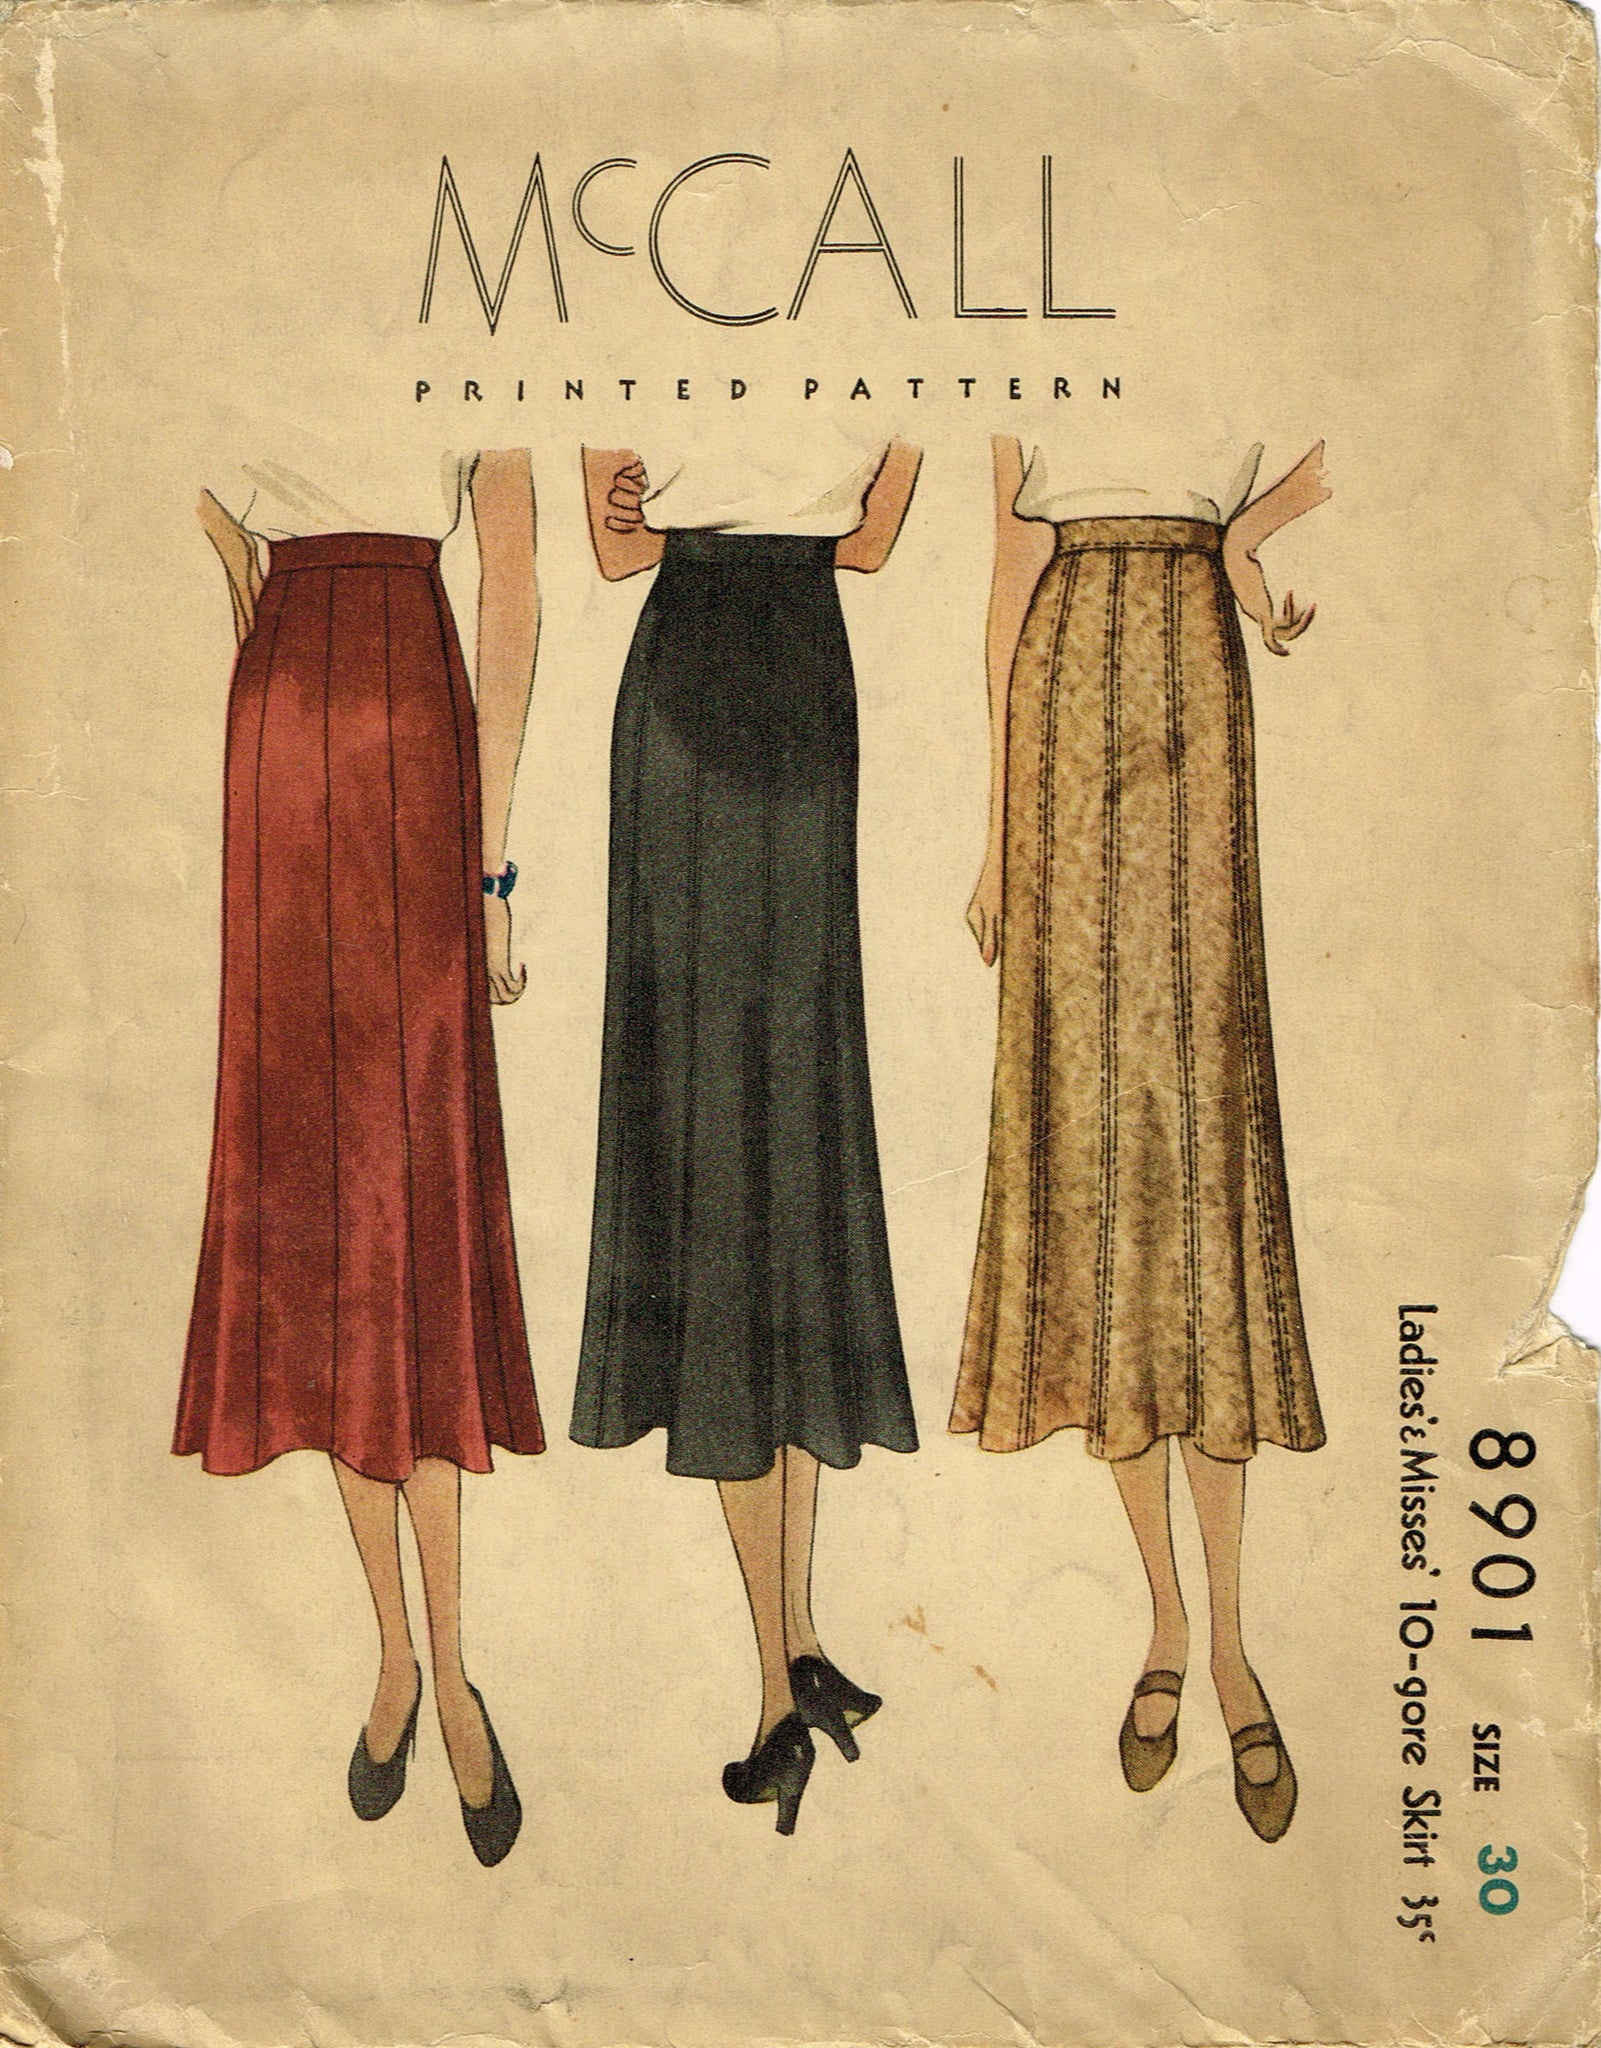 R291 McCall 7809 1949 Vintage Sewing Pattern W30 SKIRT